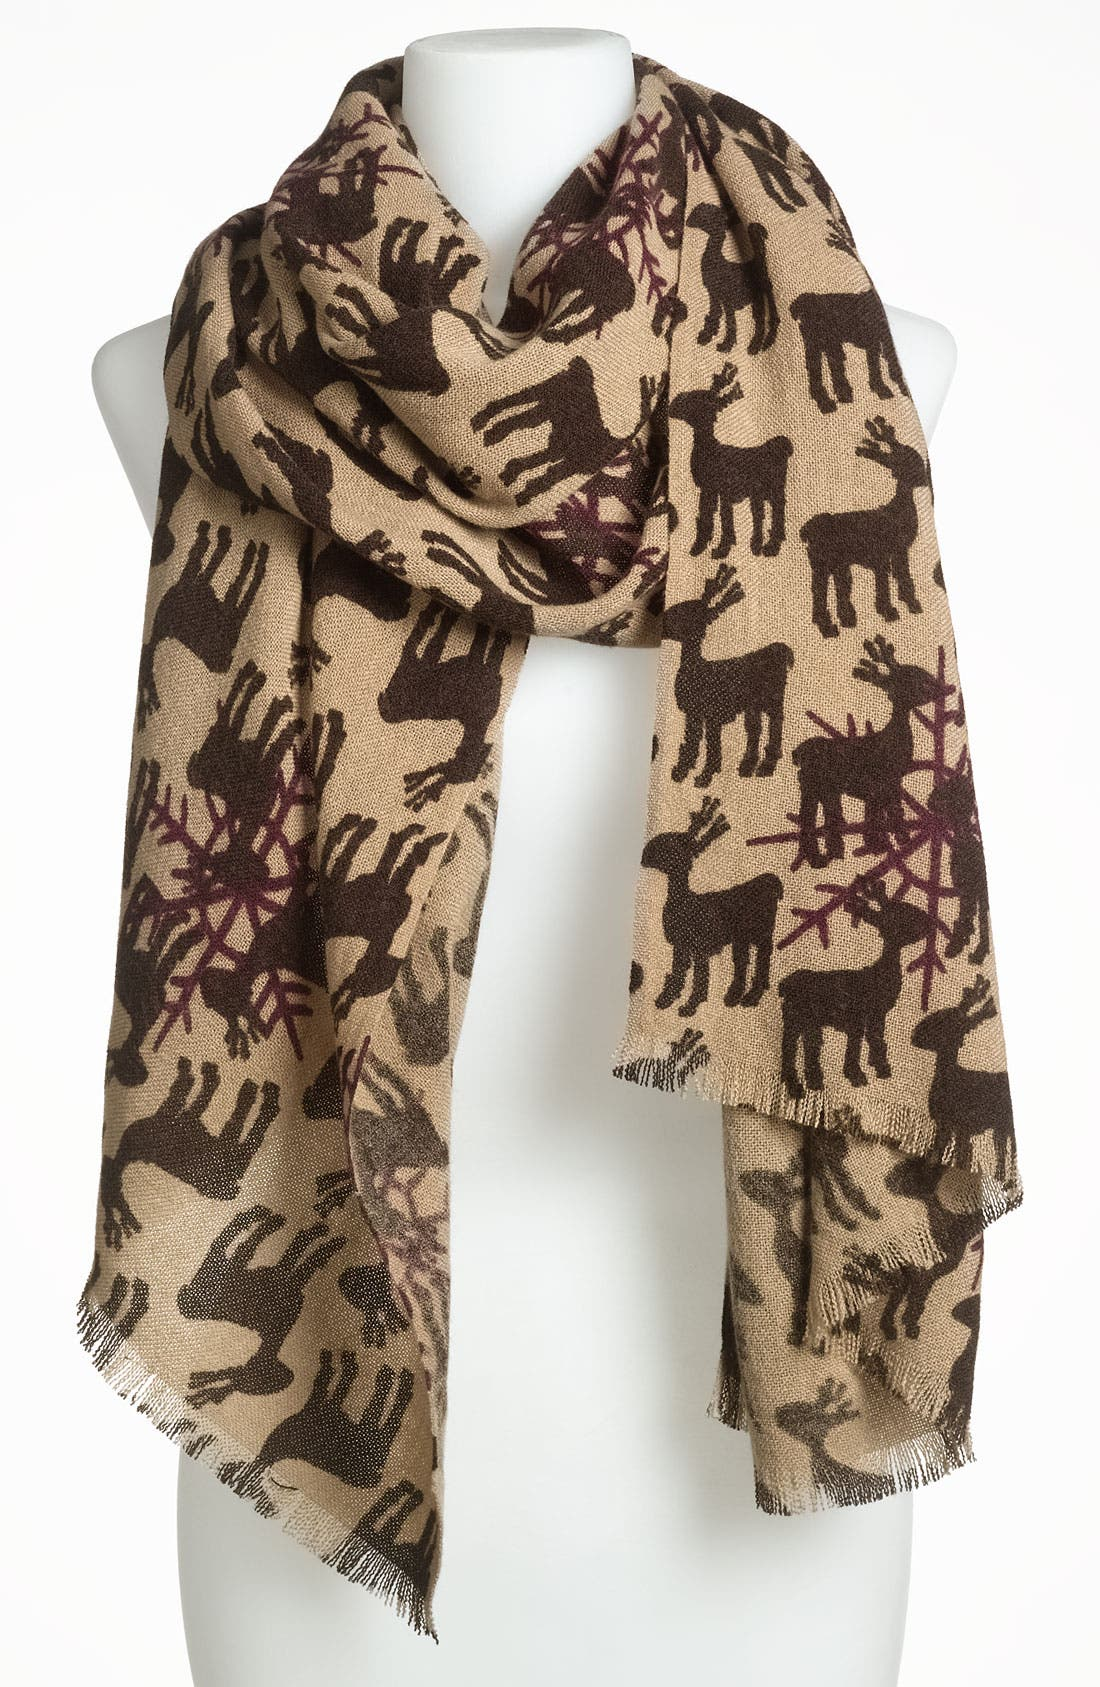 Main Image - Accessory Street 'Moose in the Snow' Scarf